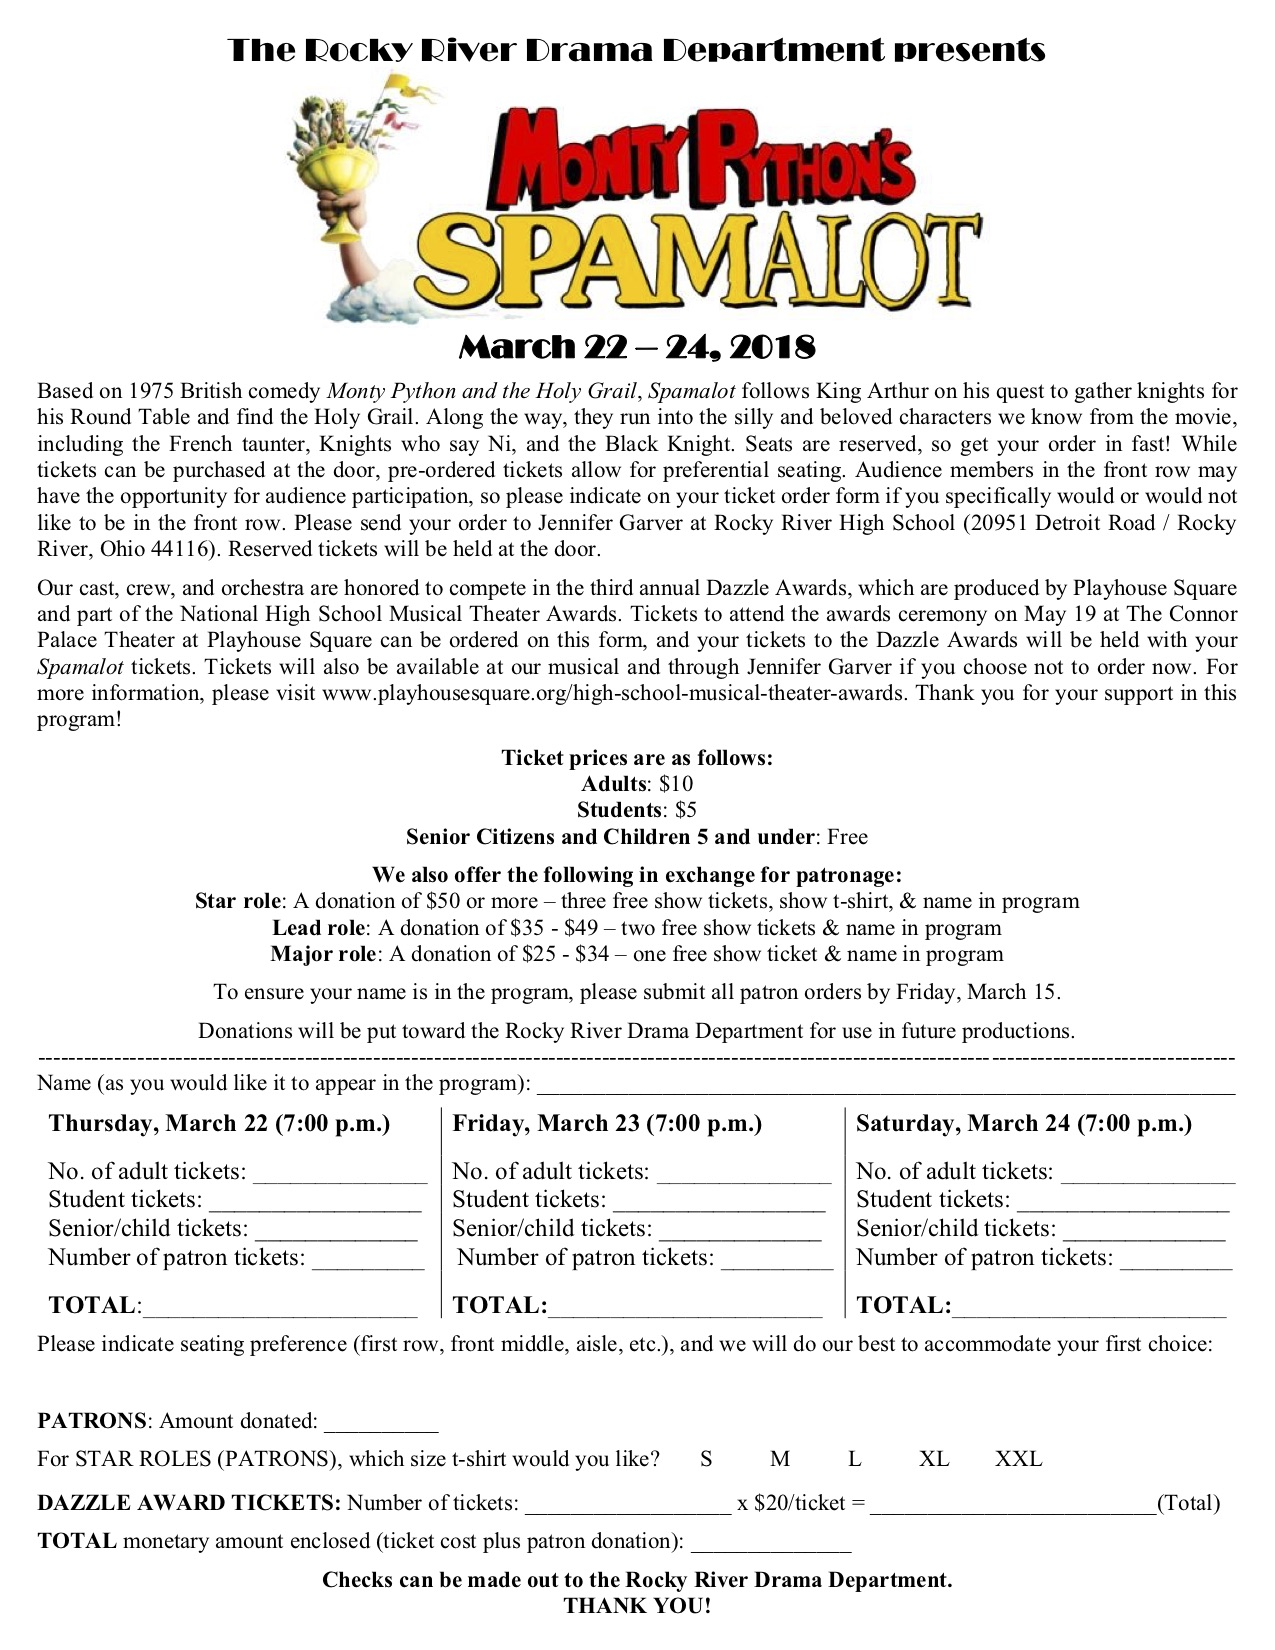 Spamalot TicketOrder Form